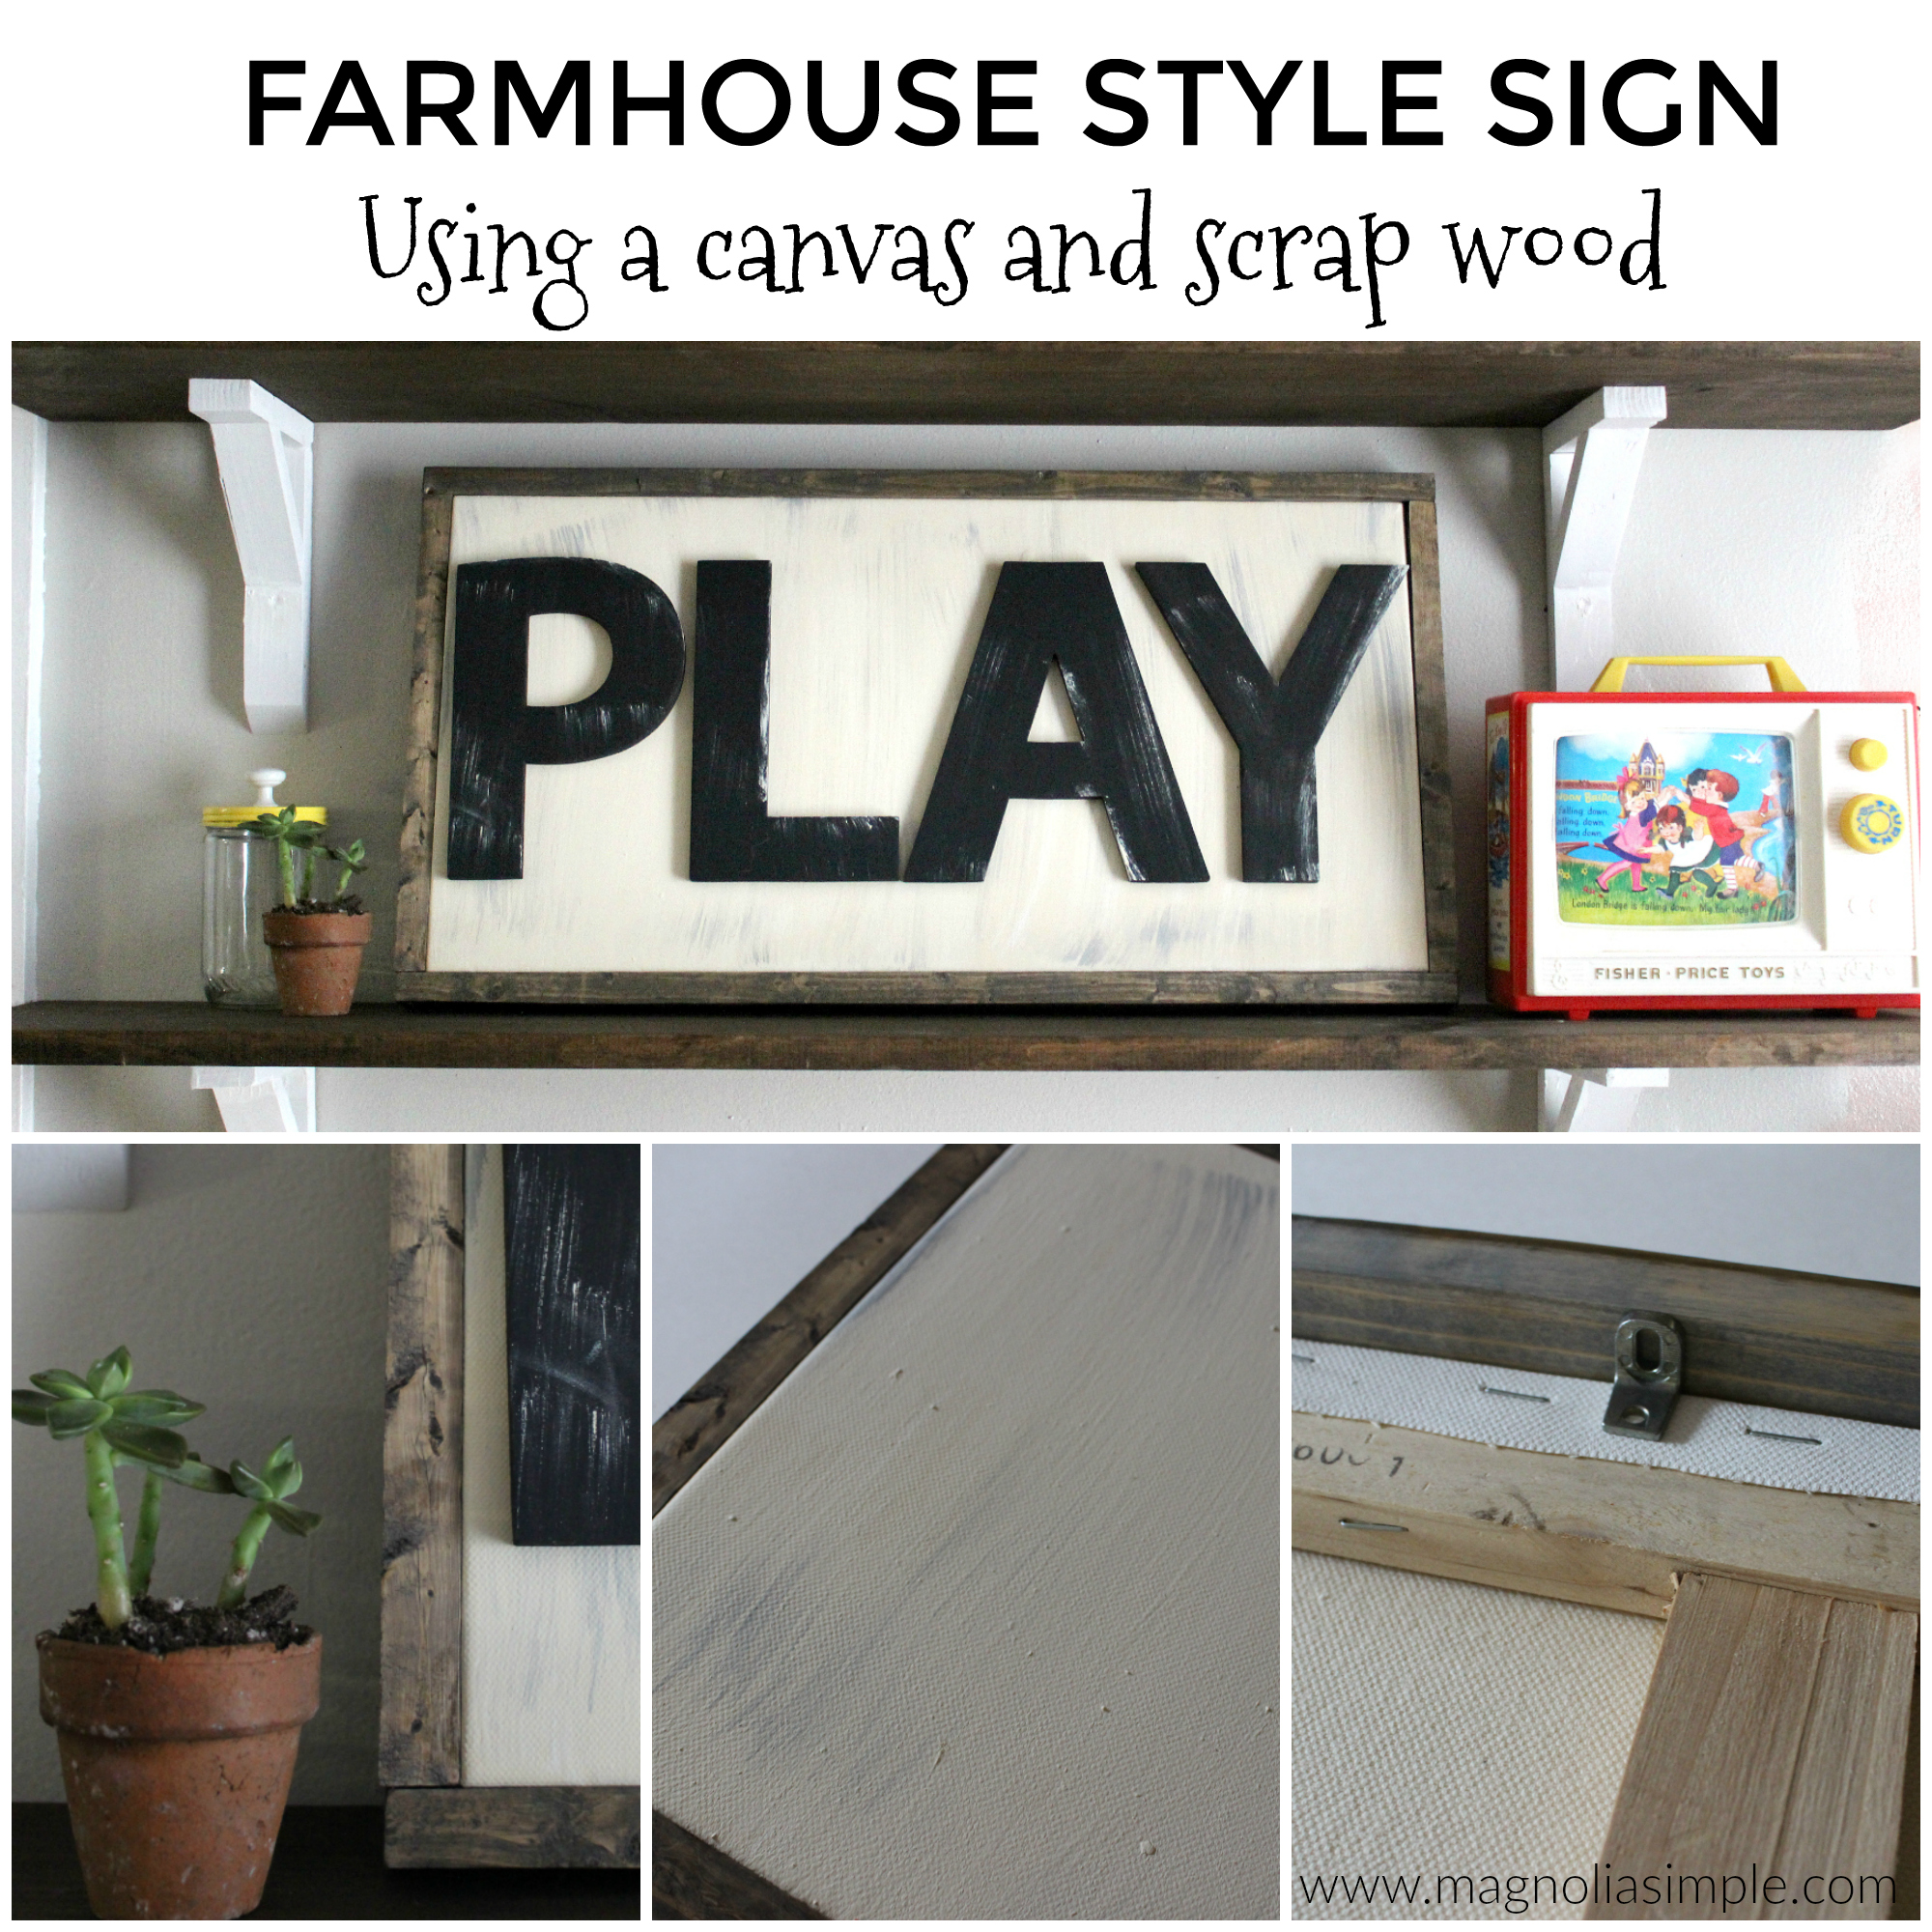 DIY Farmhouse Sign Using Framed Canvas Magnolia Simple.jpg